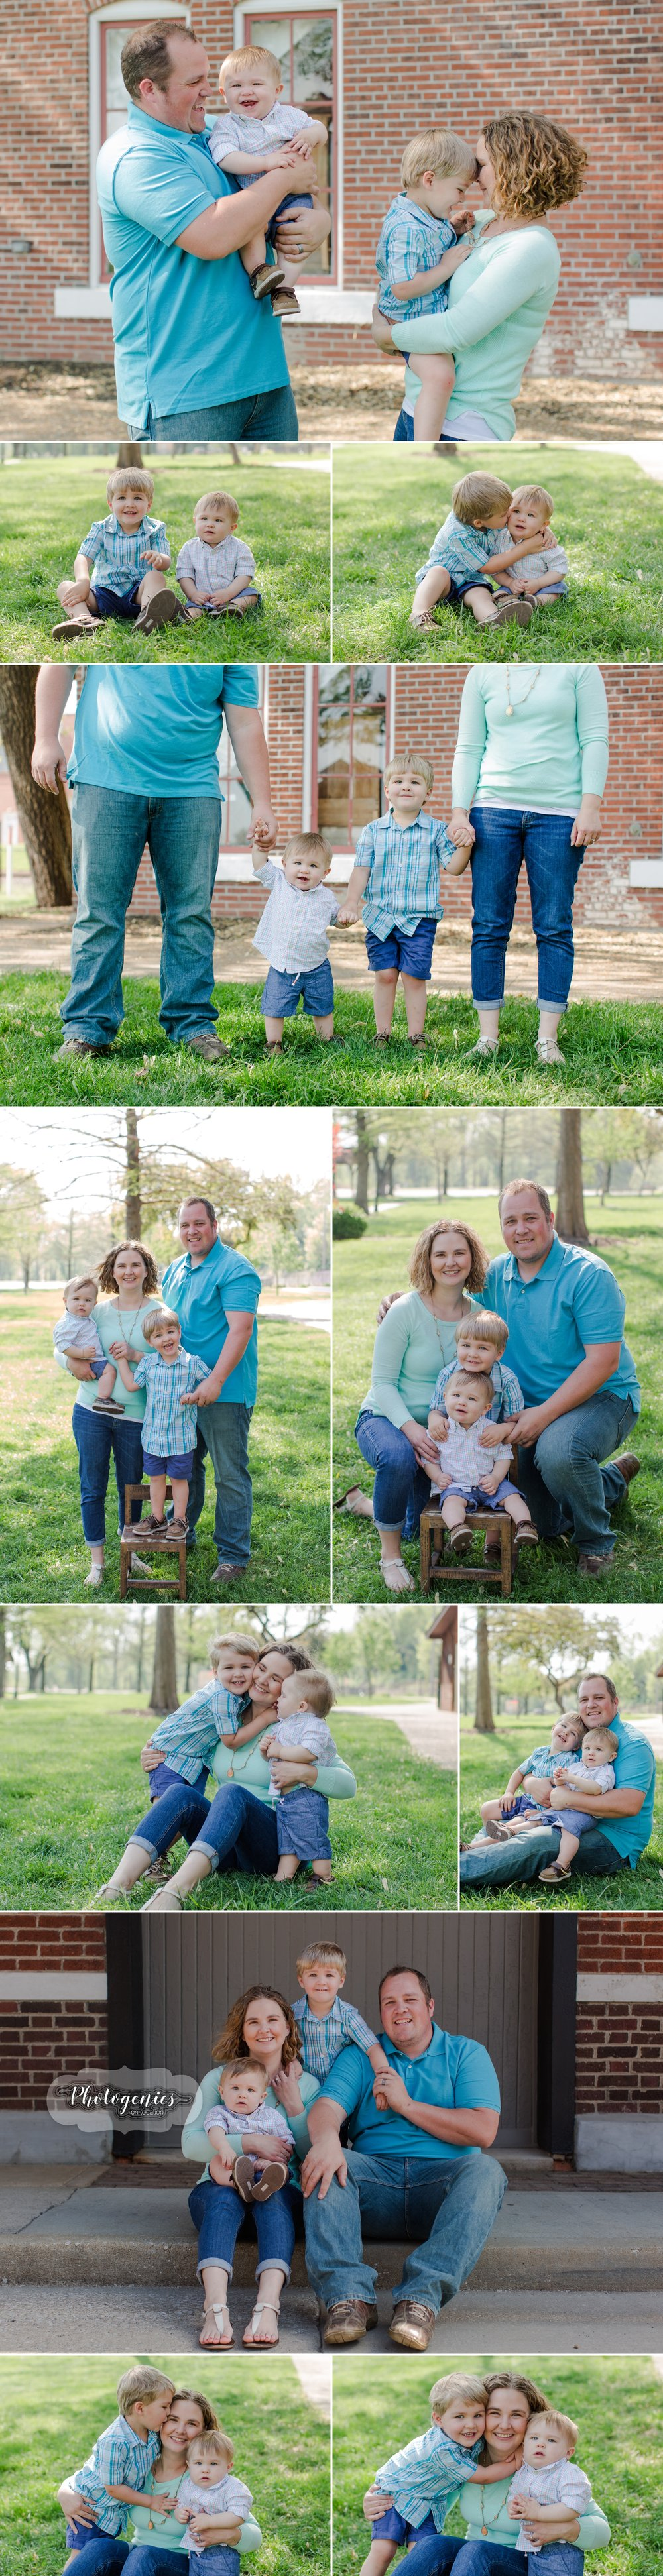 family_of_four_photography_poses_boys_brothers_ideas_birthday_photos_pictures_little_brother_big_brother_spring_outdoor_indoor 1